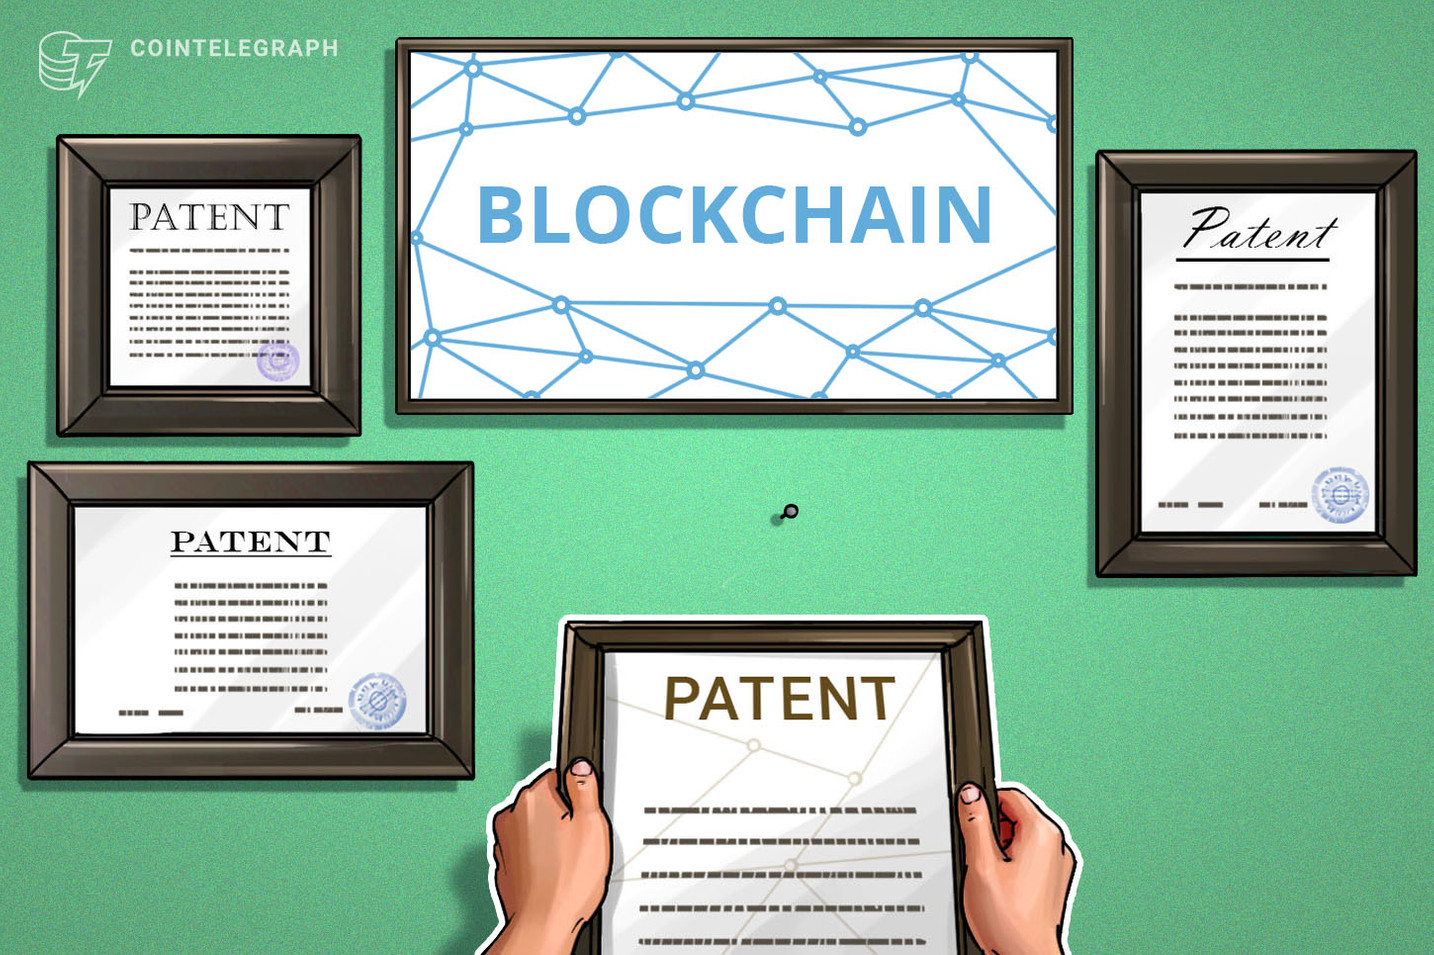 Chinese holding firm Ping An overtakes Tencent in blockchain patents race